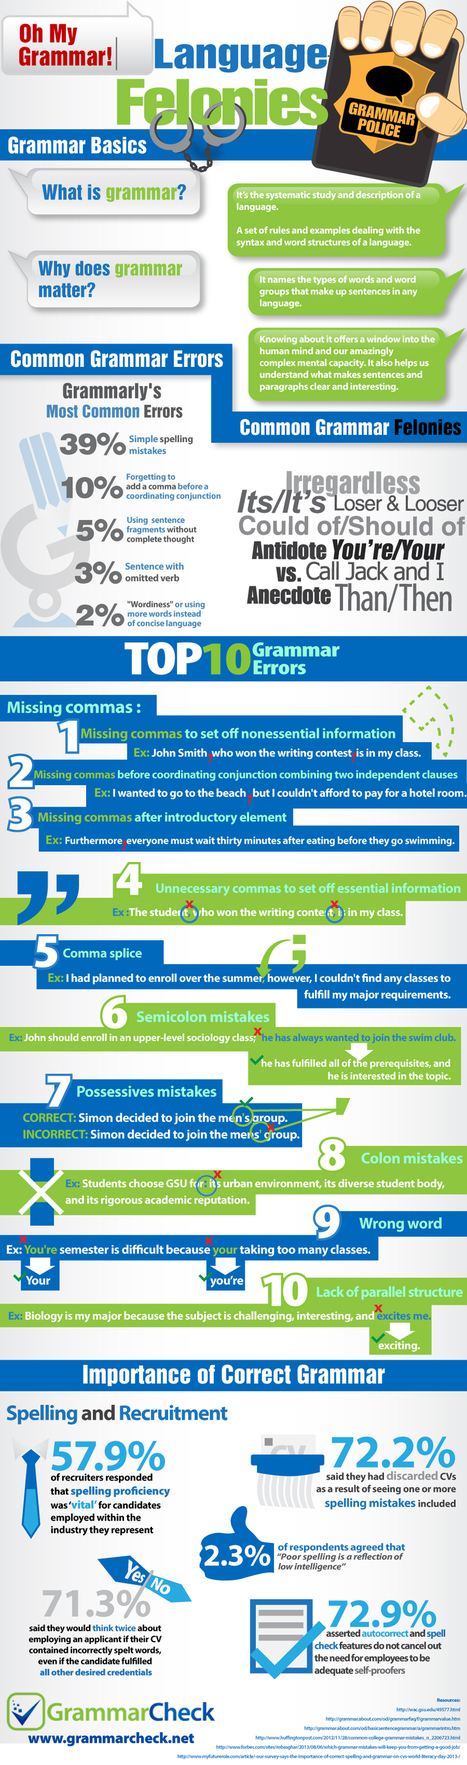 Oh My Grammar!  Language Felonies: Top 10 Grammar Errors, Common Mistakes, and the Importance of Correct Grammar (Infographic) | Business Growth through Online Sales and Marketing | Scoop.it